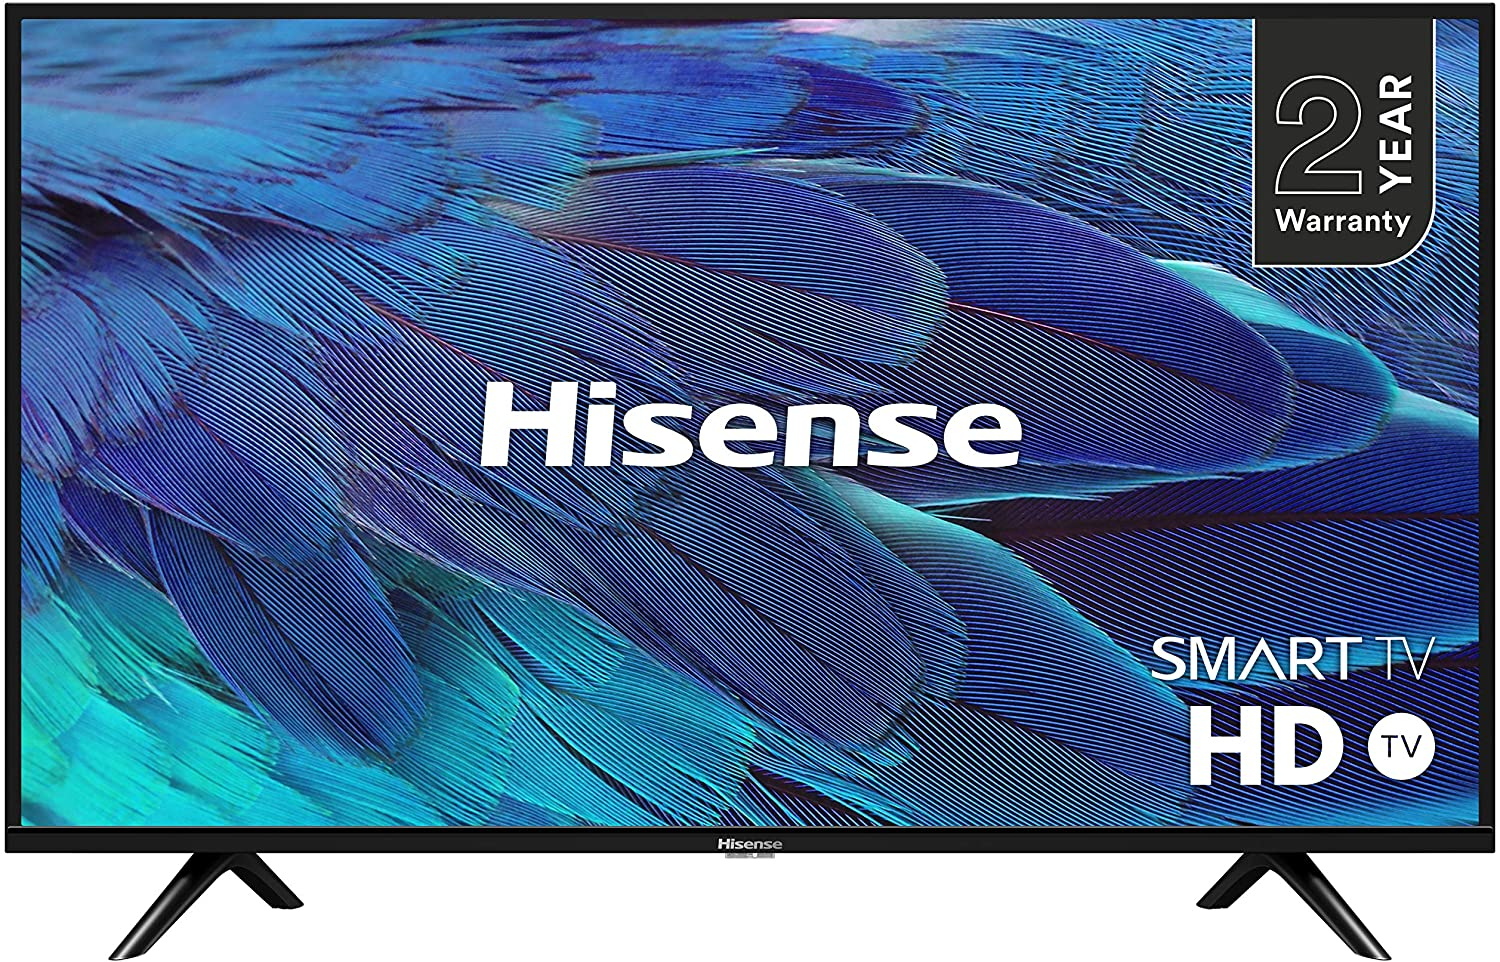 How to Fix Hisense TV problems